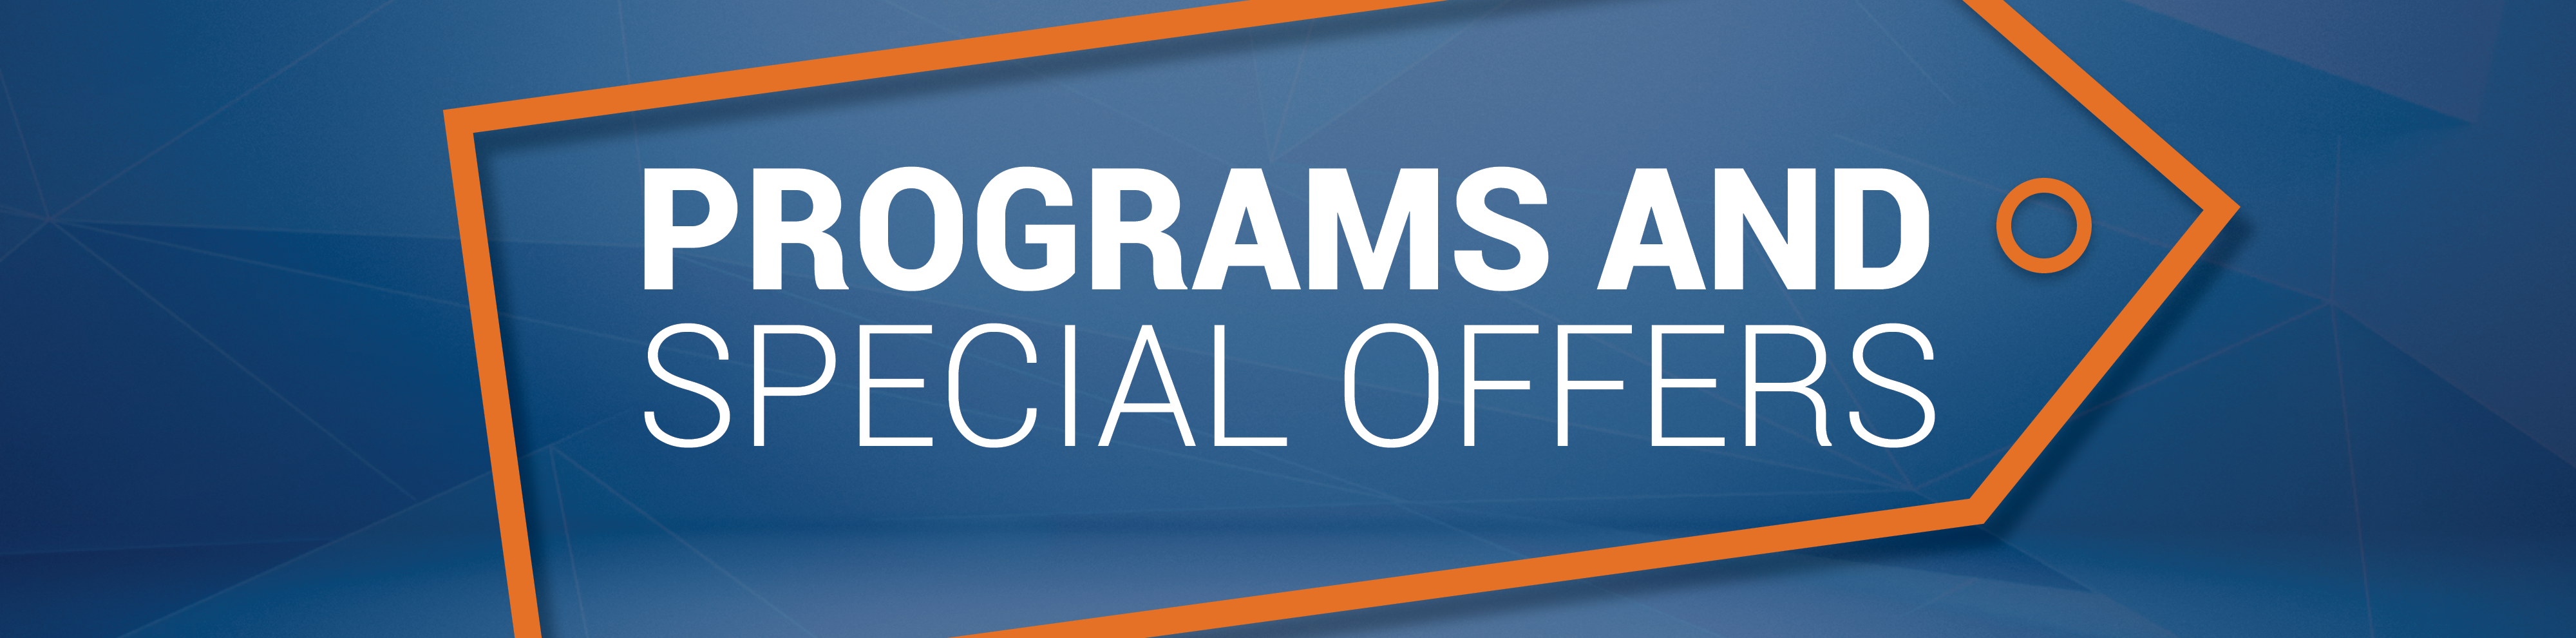 SMC Programs and Special Offers